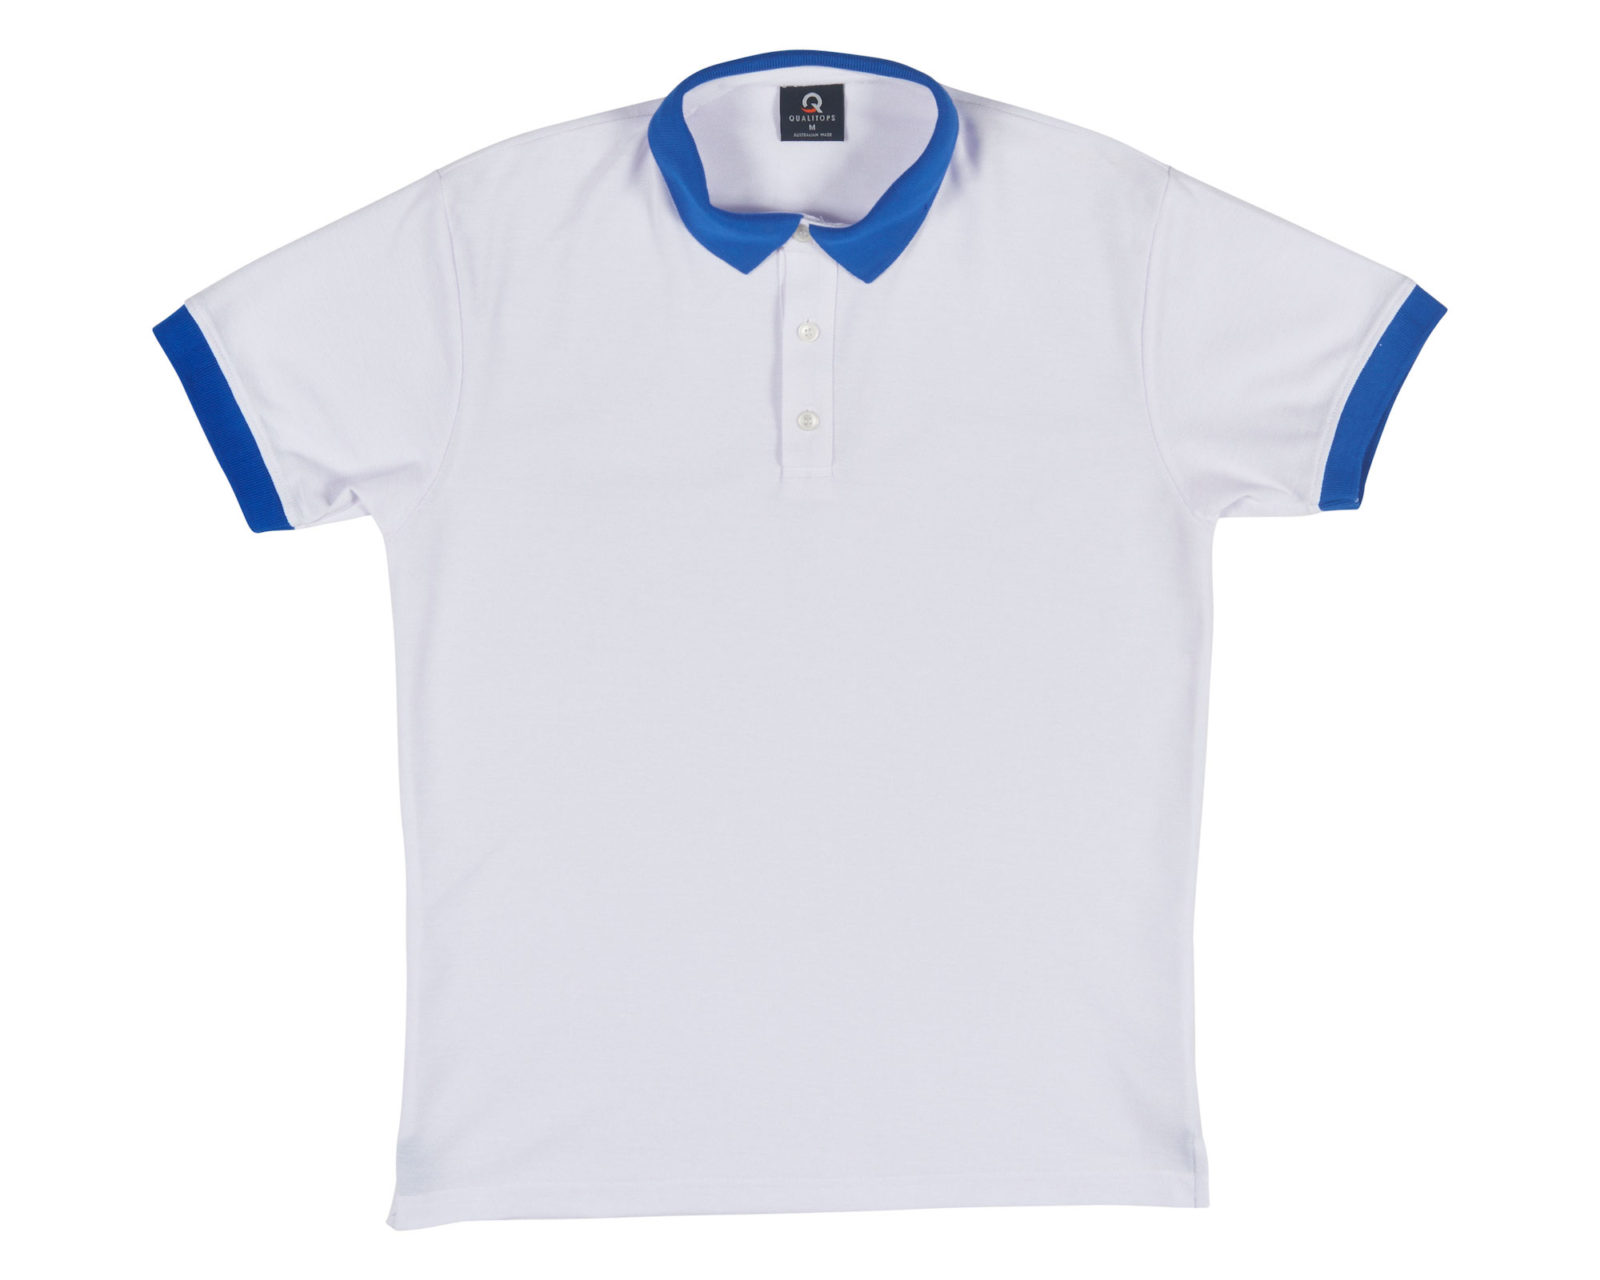 Qualitops Custom Made Mens Two Tone Short Sleeve Cuff Polo Polycotton Australian made clothing